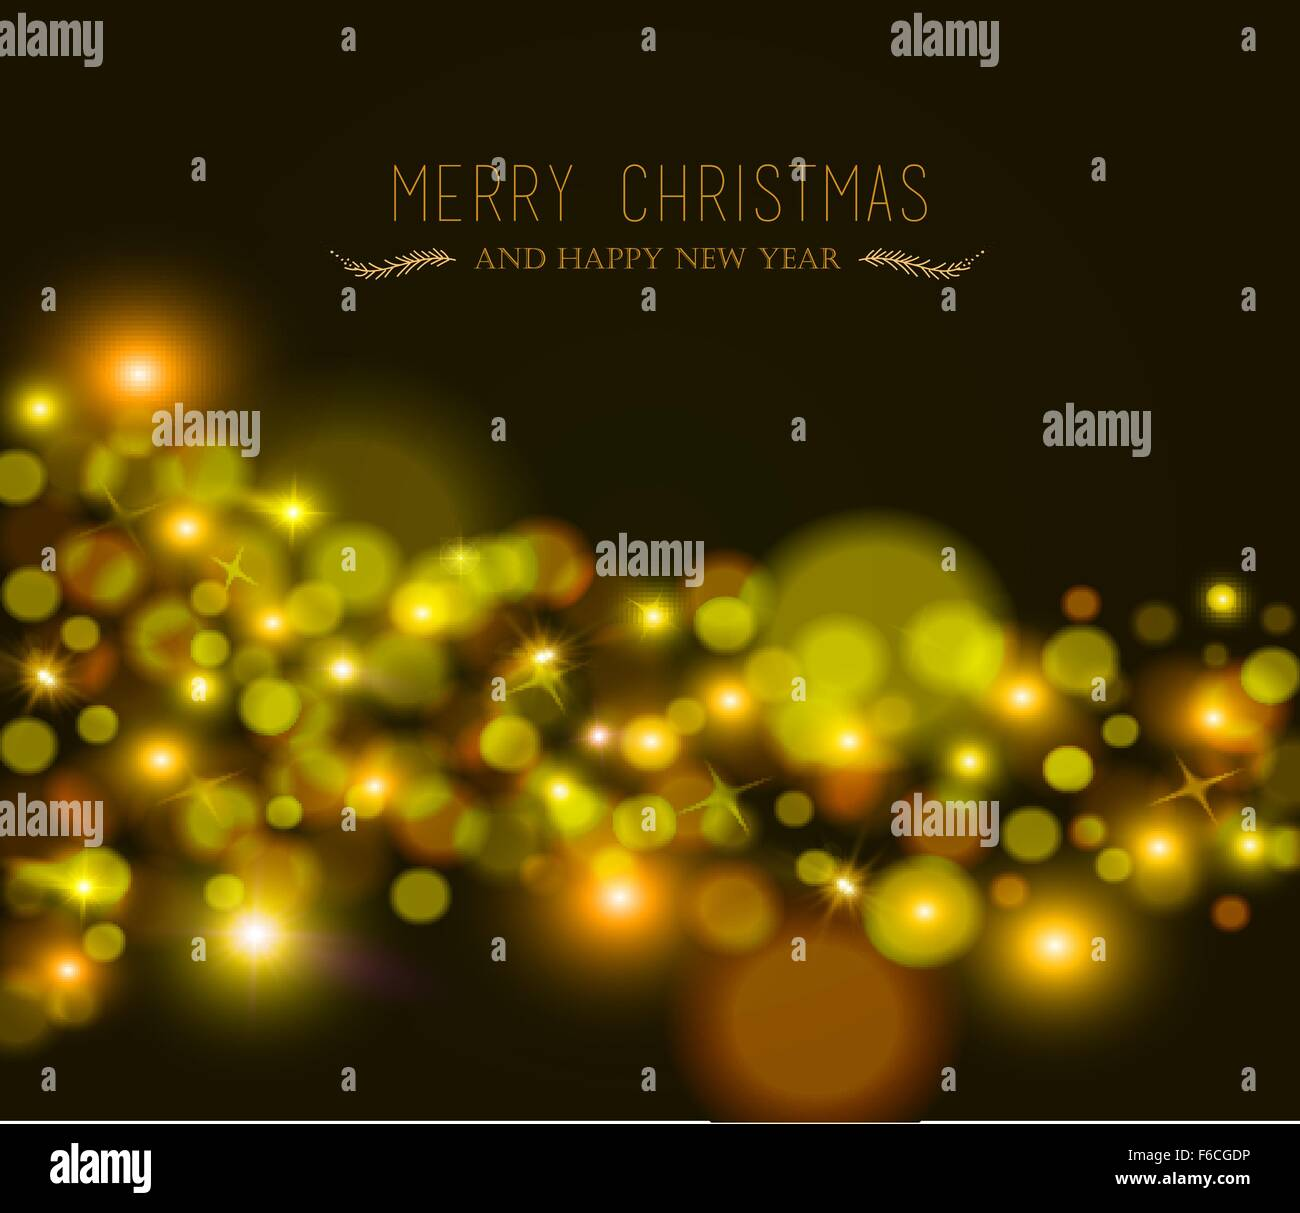 merry christmas happy new year blur bokeh lights star and sparkle background with text ideal for xmas greeting card or holiday